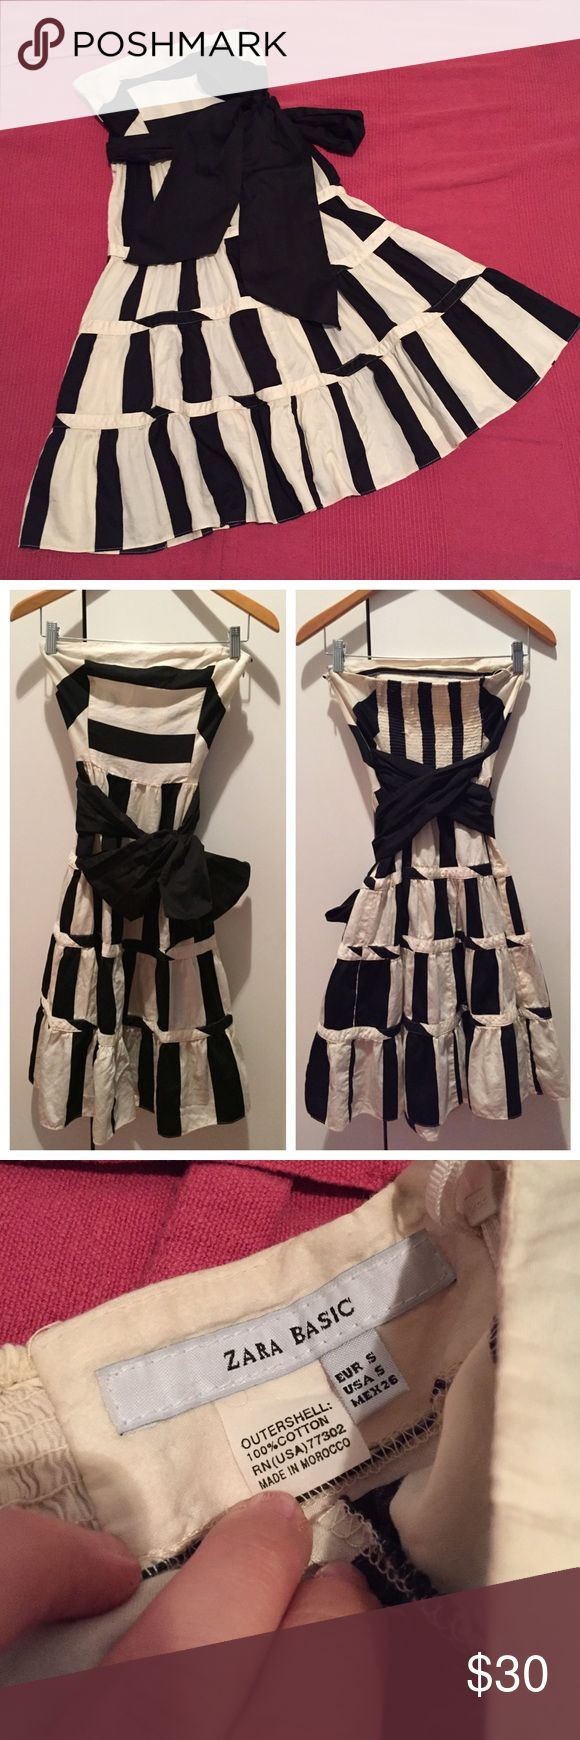 """Zara Strapless Summer Dress with black Fabric Belt Zara Strapless Summer Dress with black Fabric Belt // Size: Small // Chest: 14"""" (has elastic band on back so it stretches up to another 4-5"""" ) total length: 34"""" // Condition: Excellent. Only worn once to a wedding // Material: Cotton // Zara Dresses Strapless"""